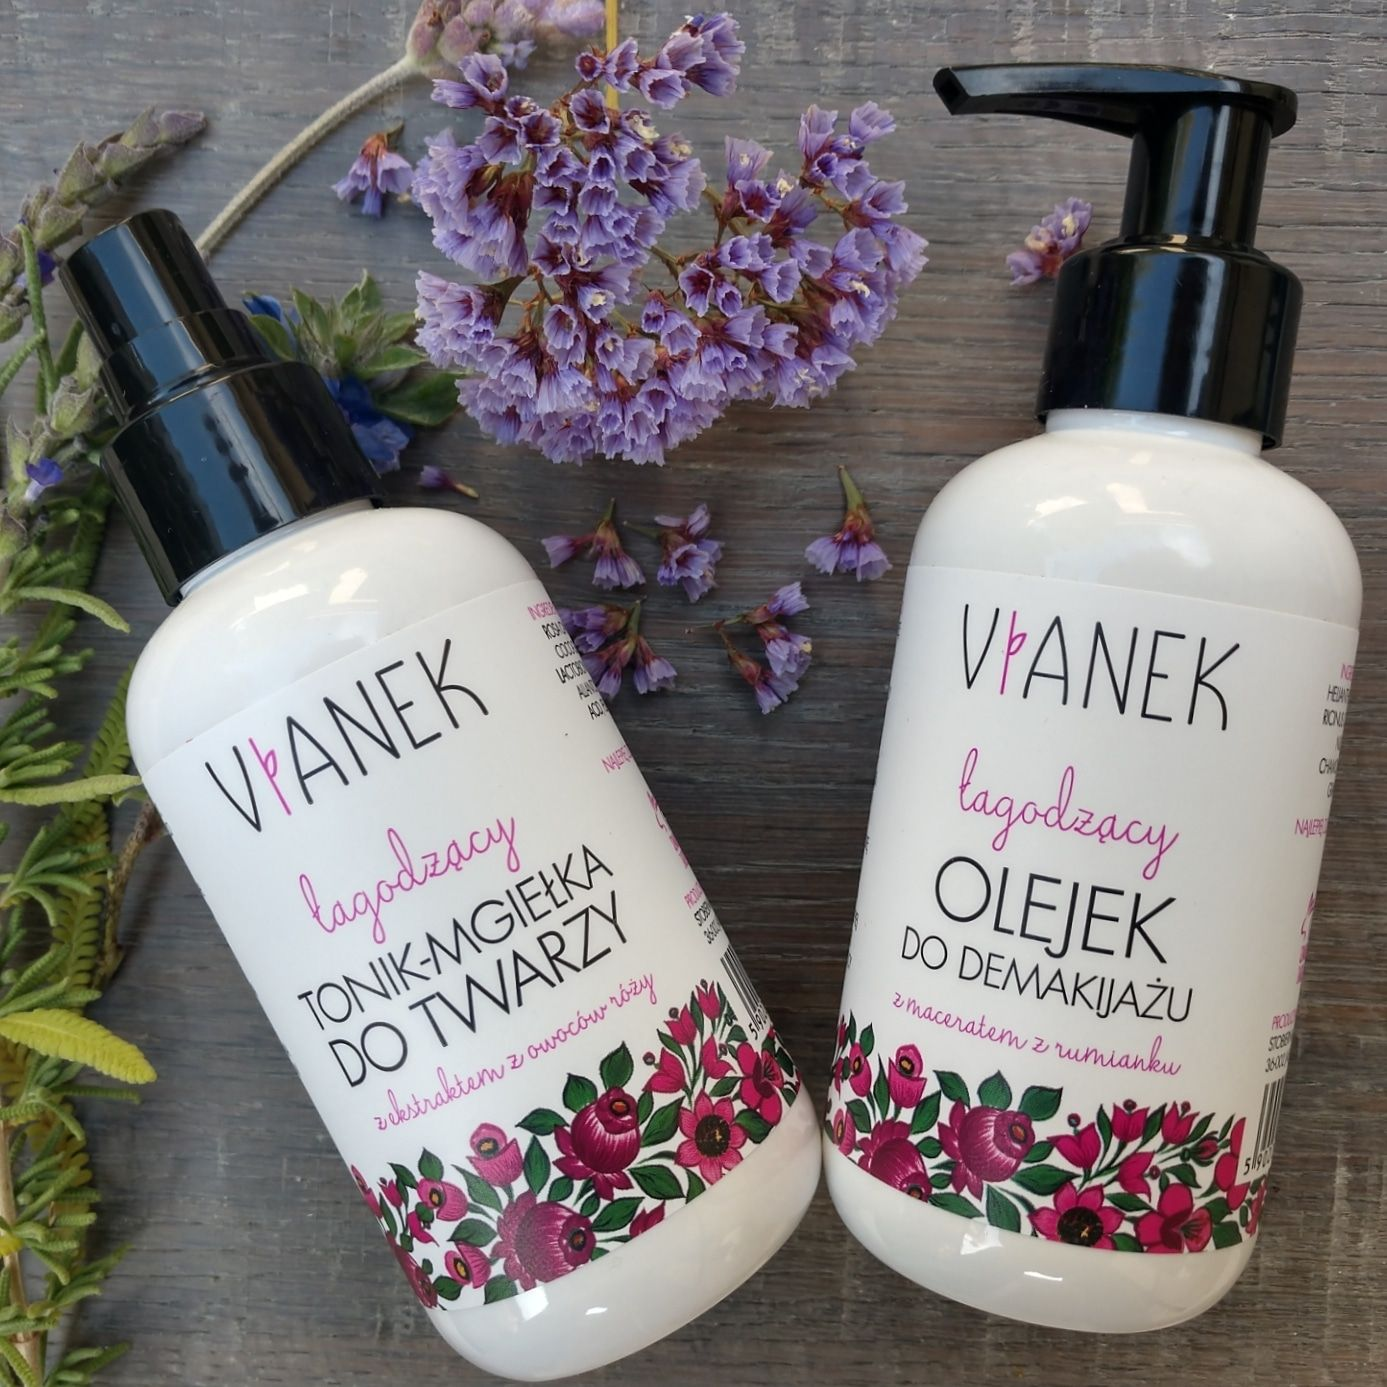 Vianek Gentle Oil Makeup Remover and Tonic Mist for